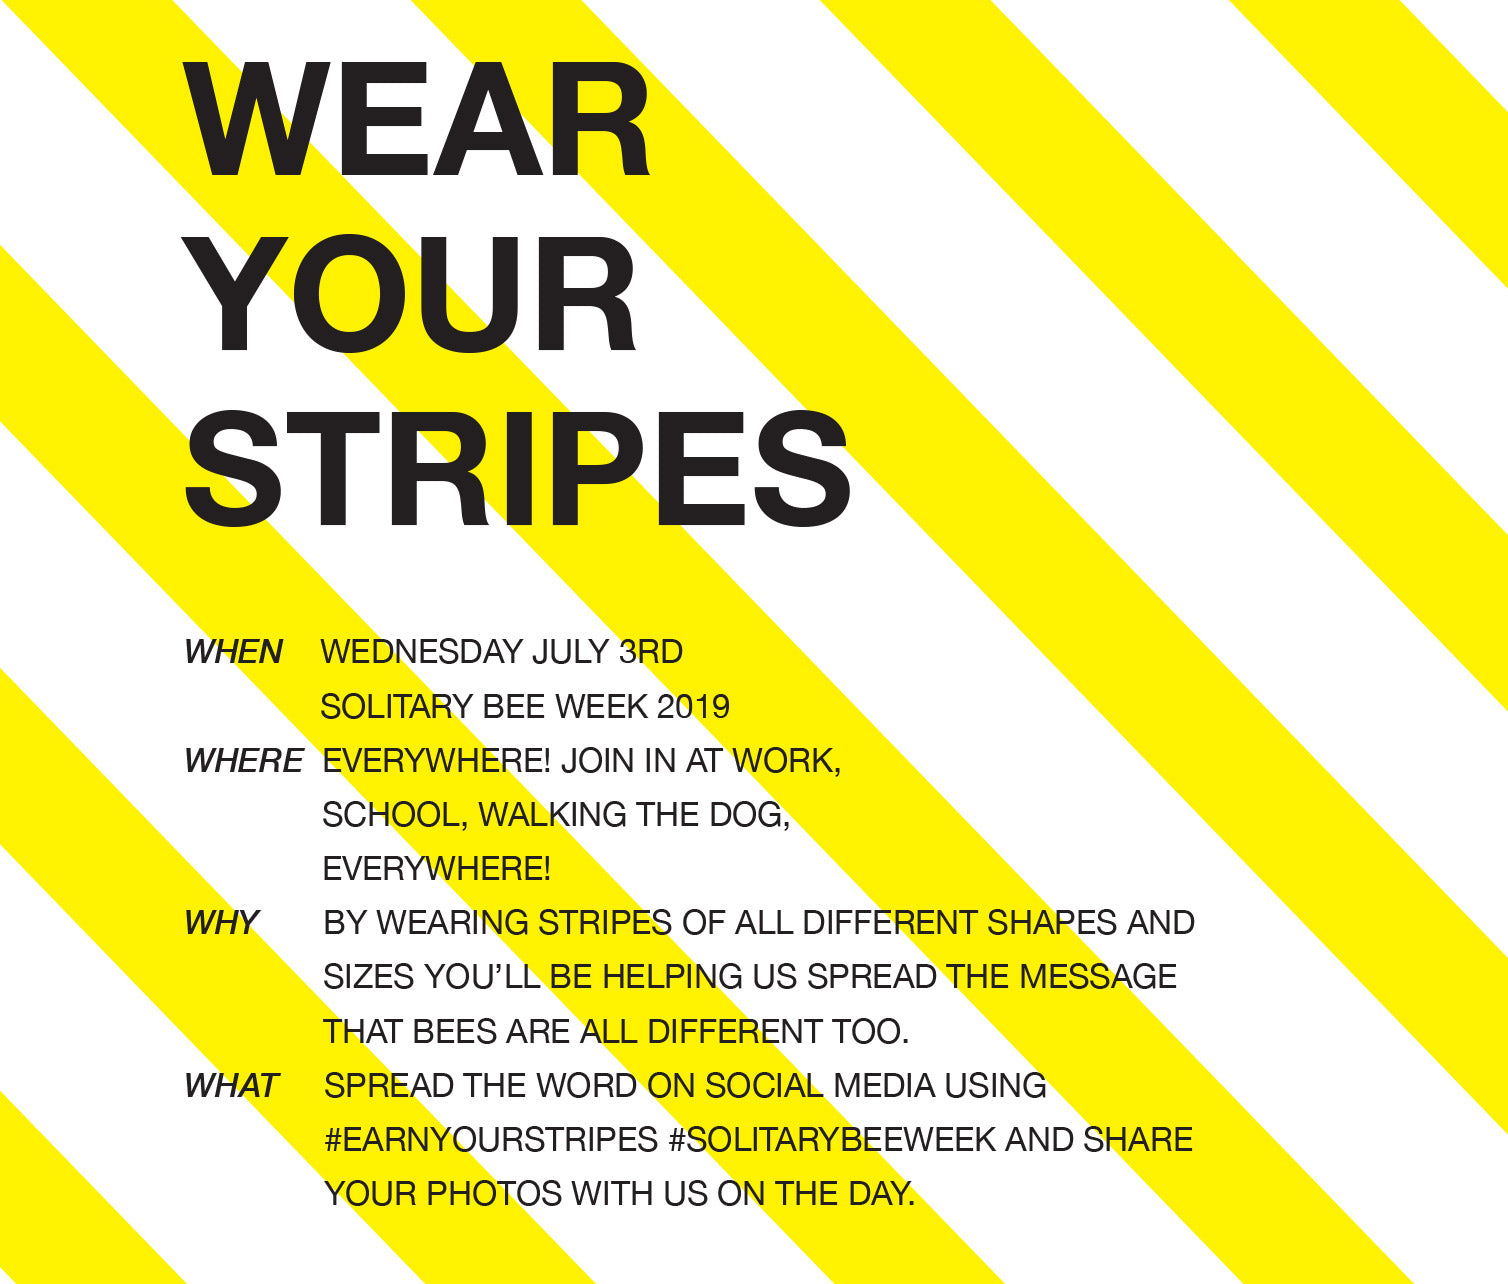 wear your stripes invite for solitary bee week